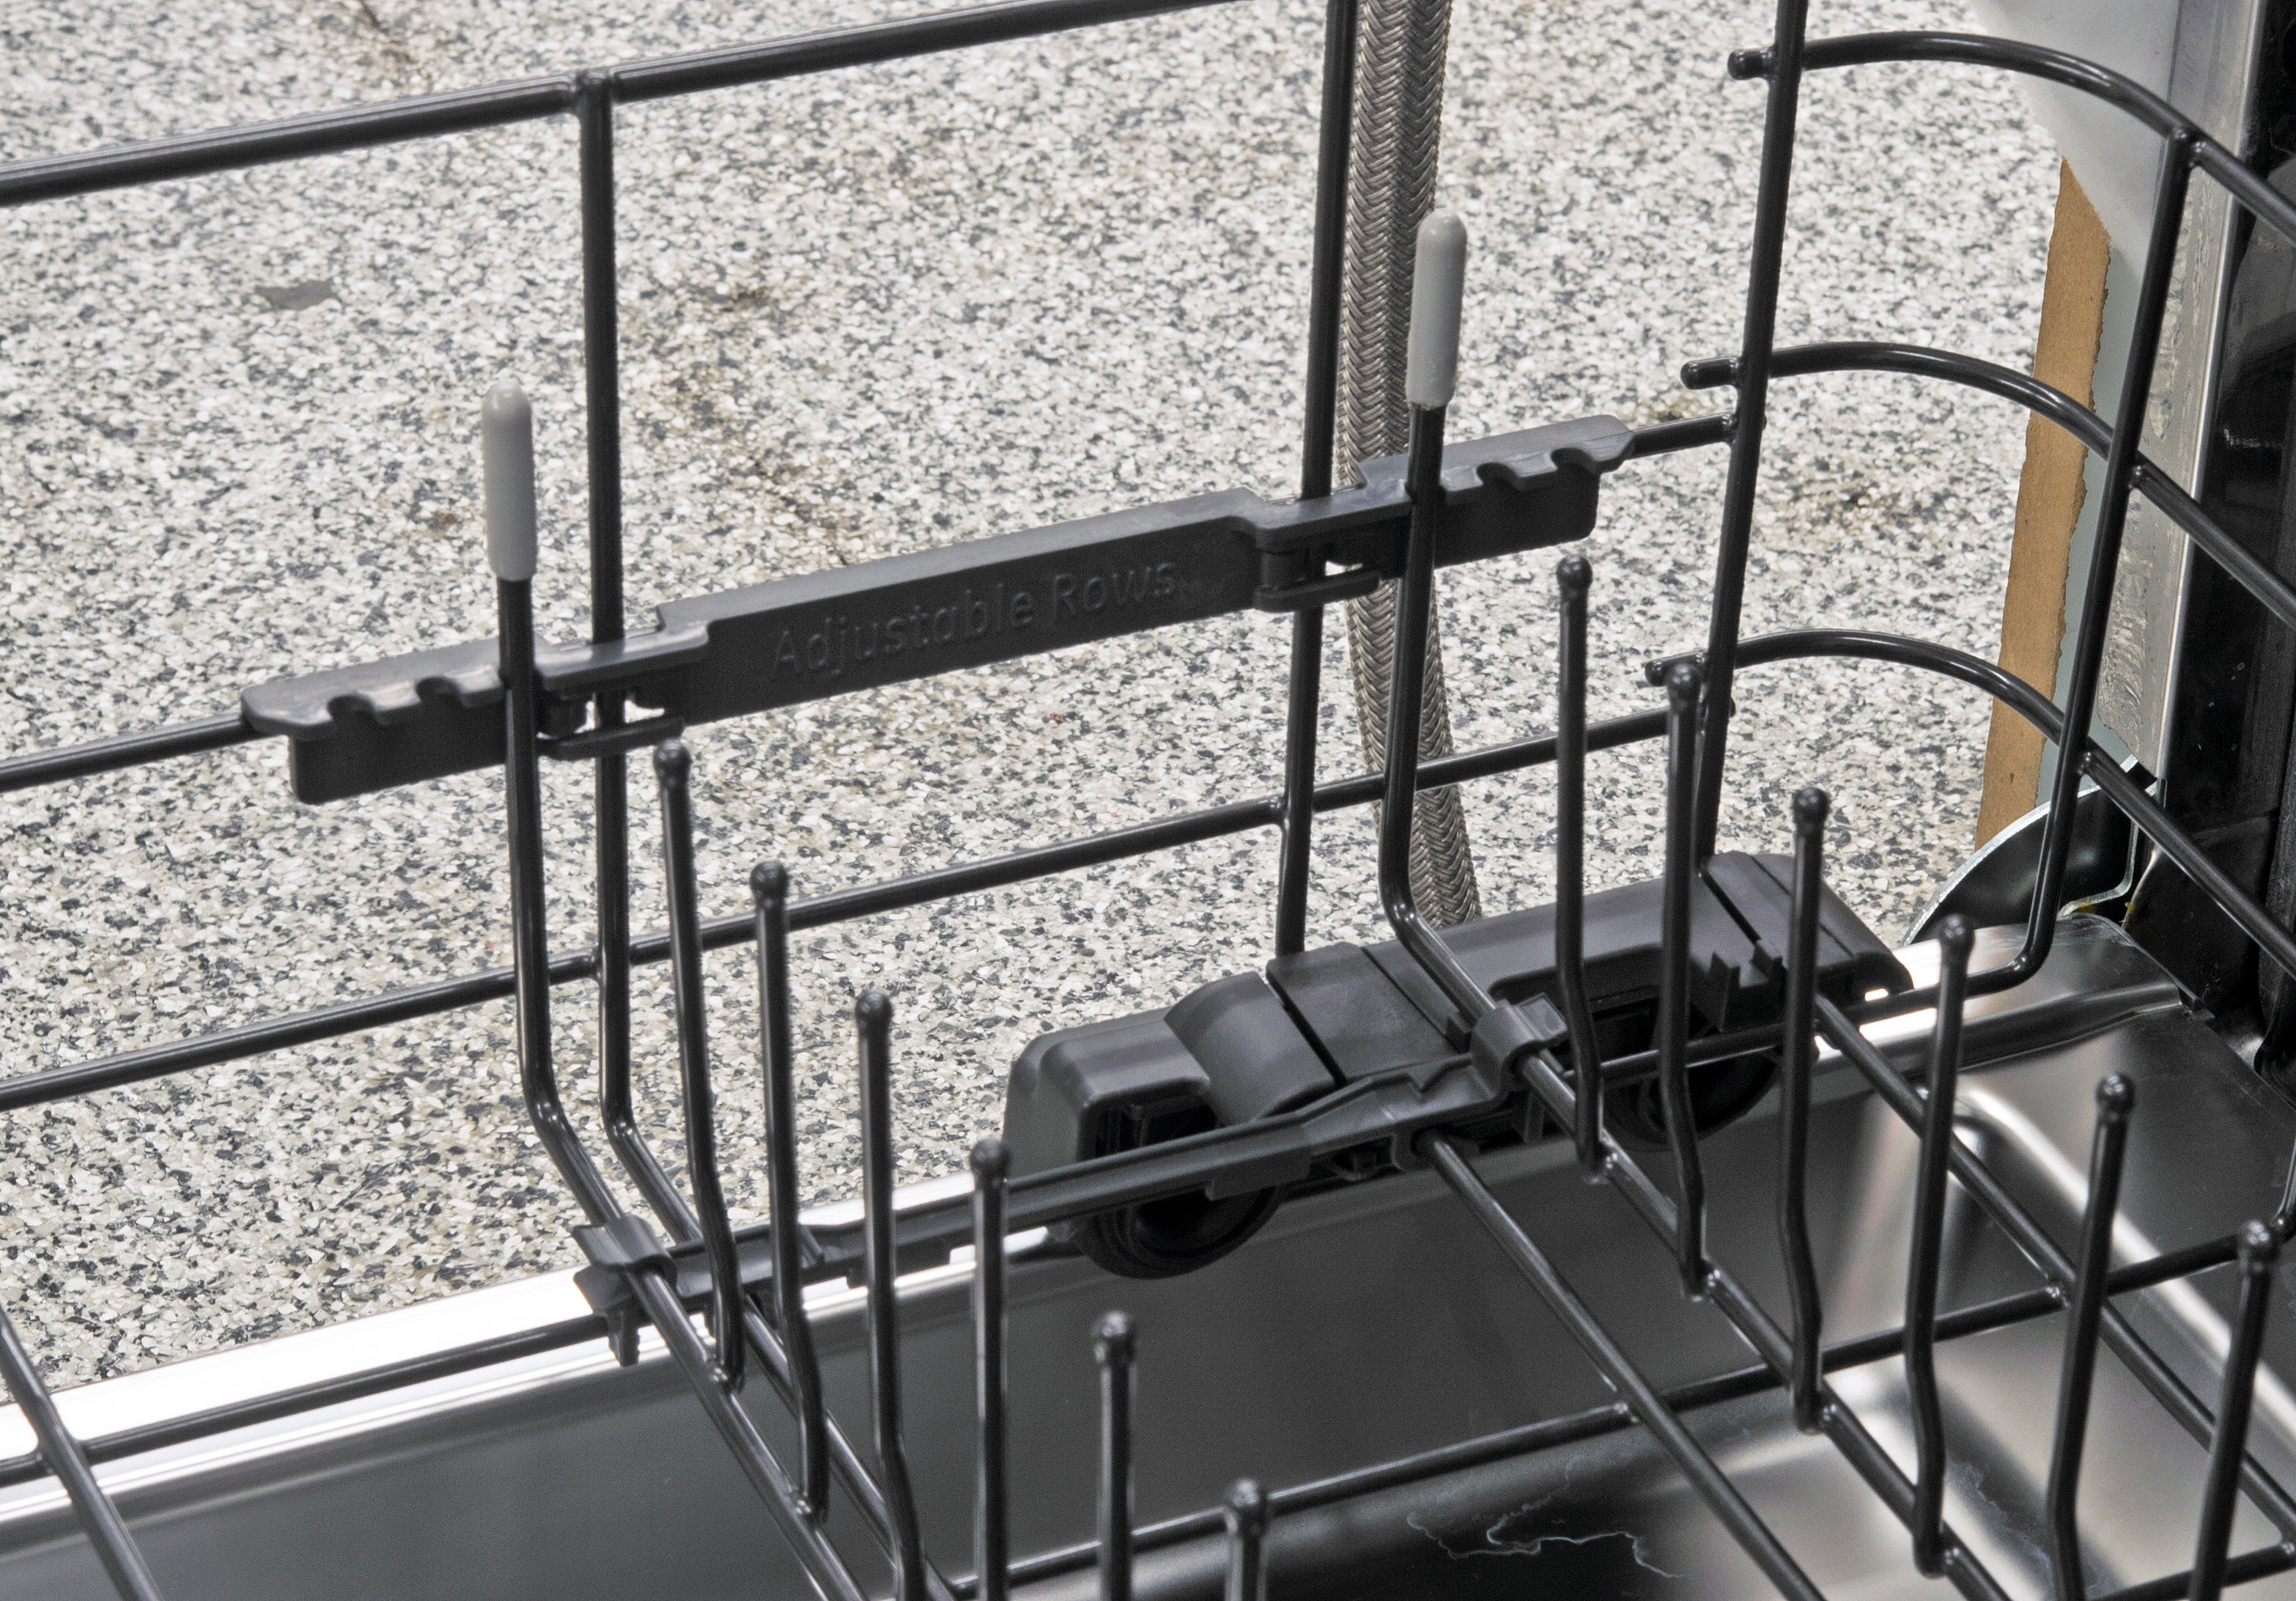 The lower rack has two rows of tines whose width can be adjusted using the mechanism seen here.